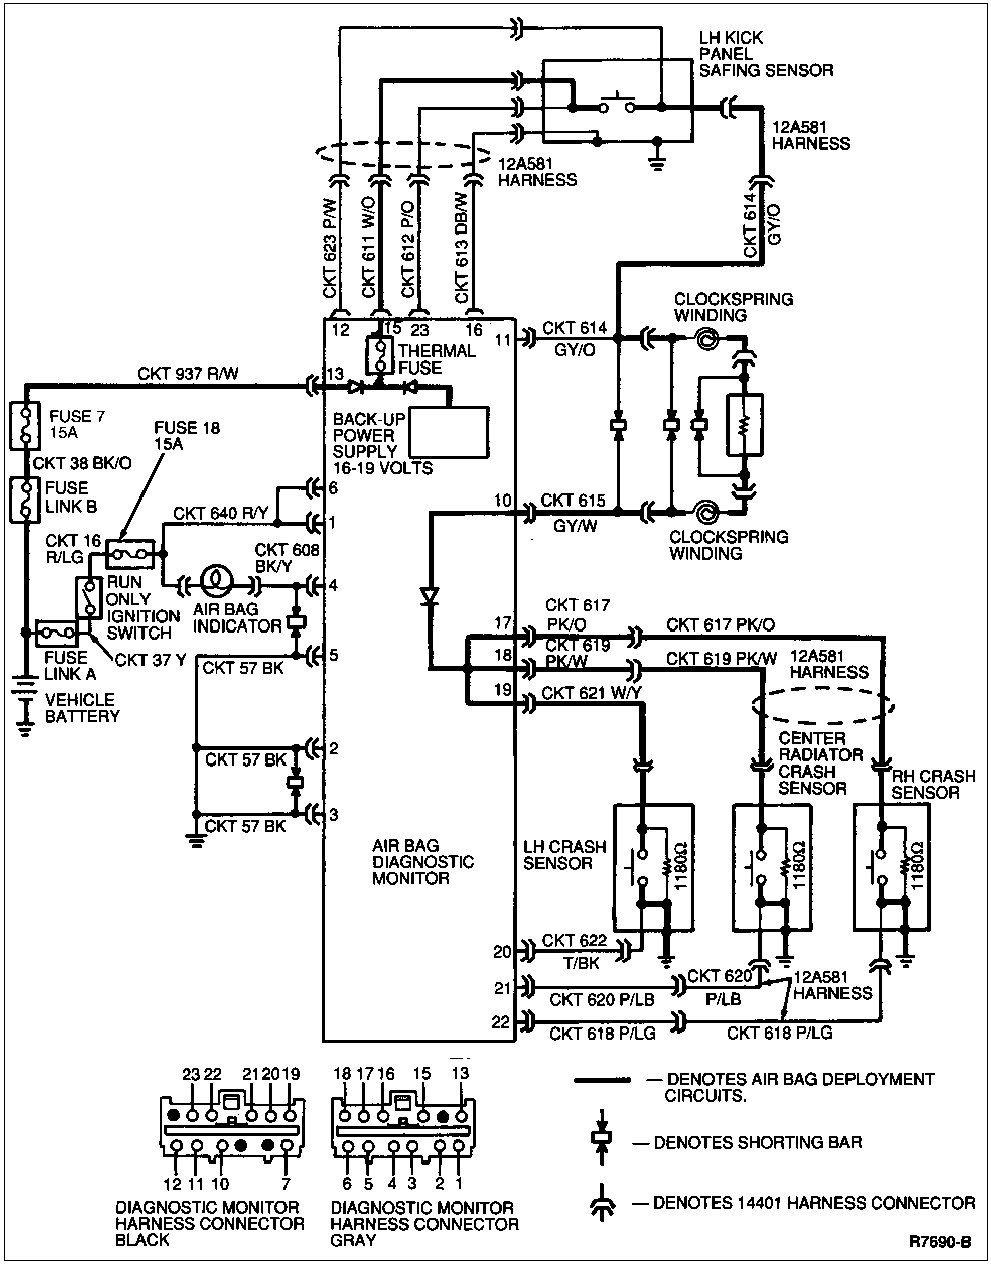 hight resolution of gm srs diagram wiring diagrams computer module chevy airbag schematic wiring diagram source gm wiring diagrams